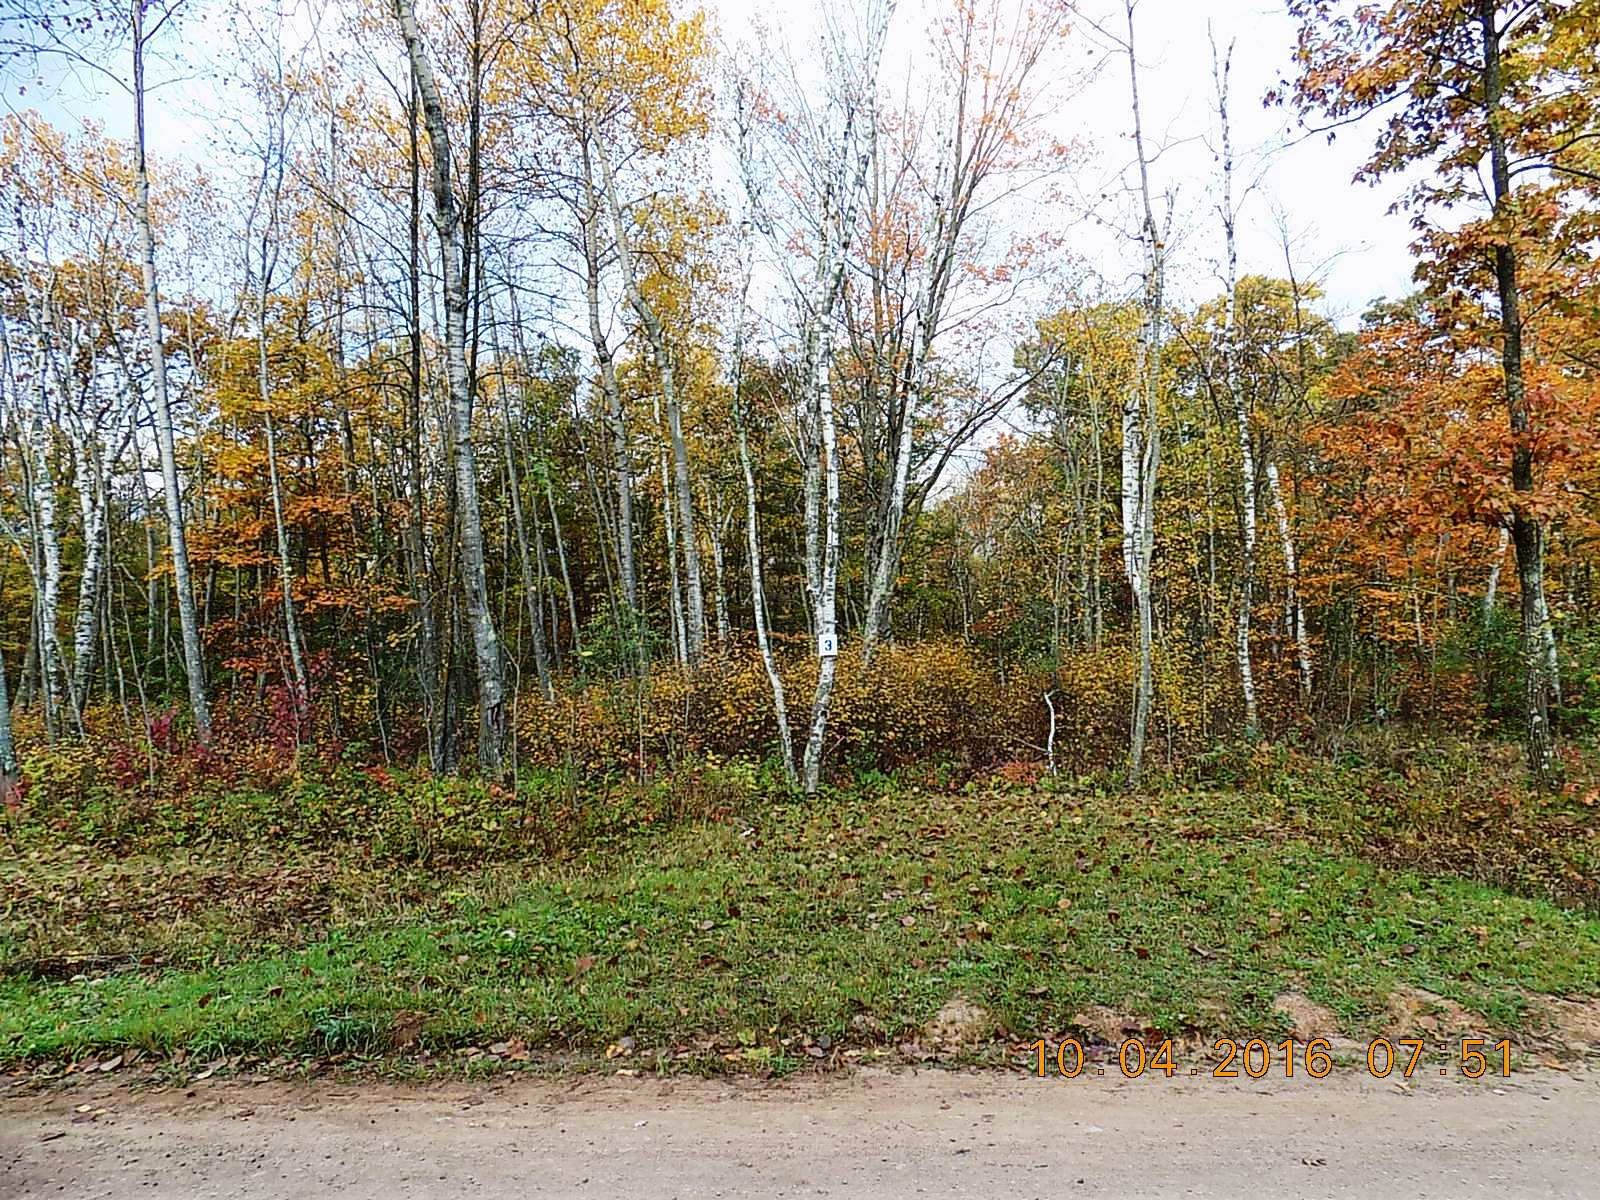 Building Lot for Sale in North Oaks Subdivision, MN, Acreage